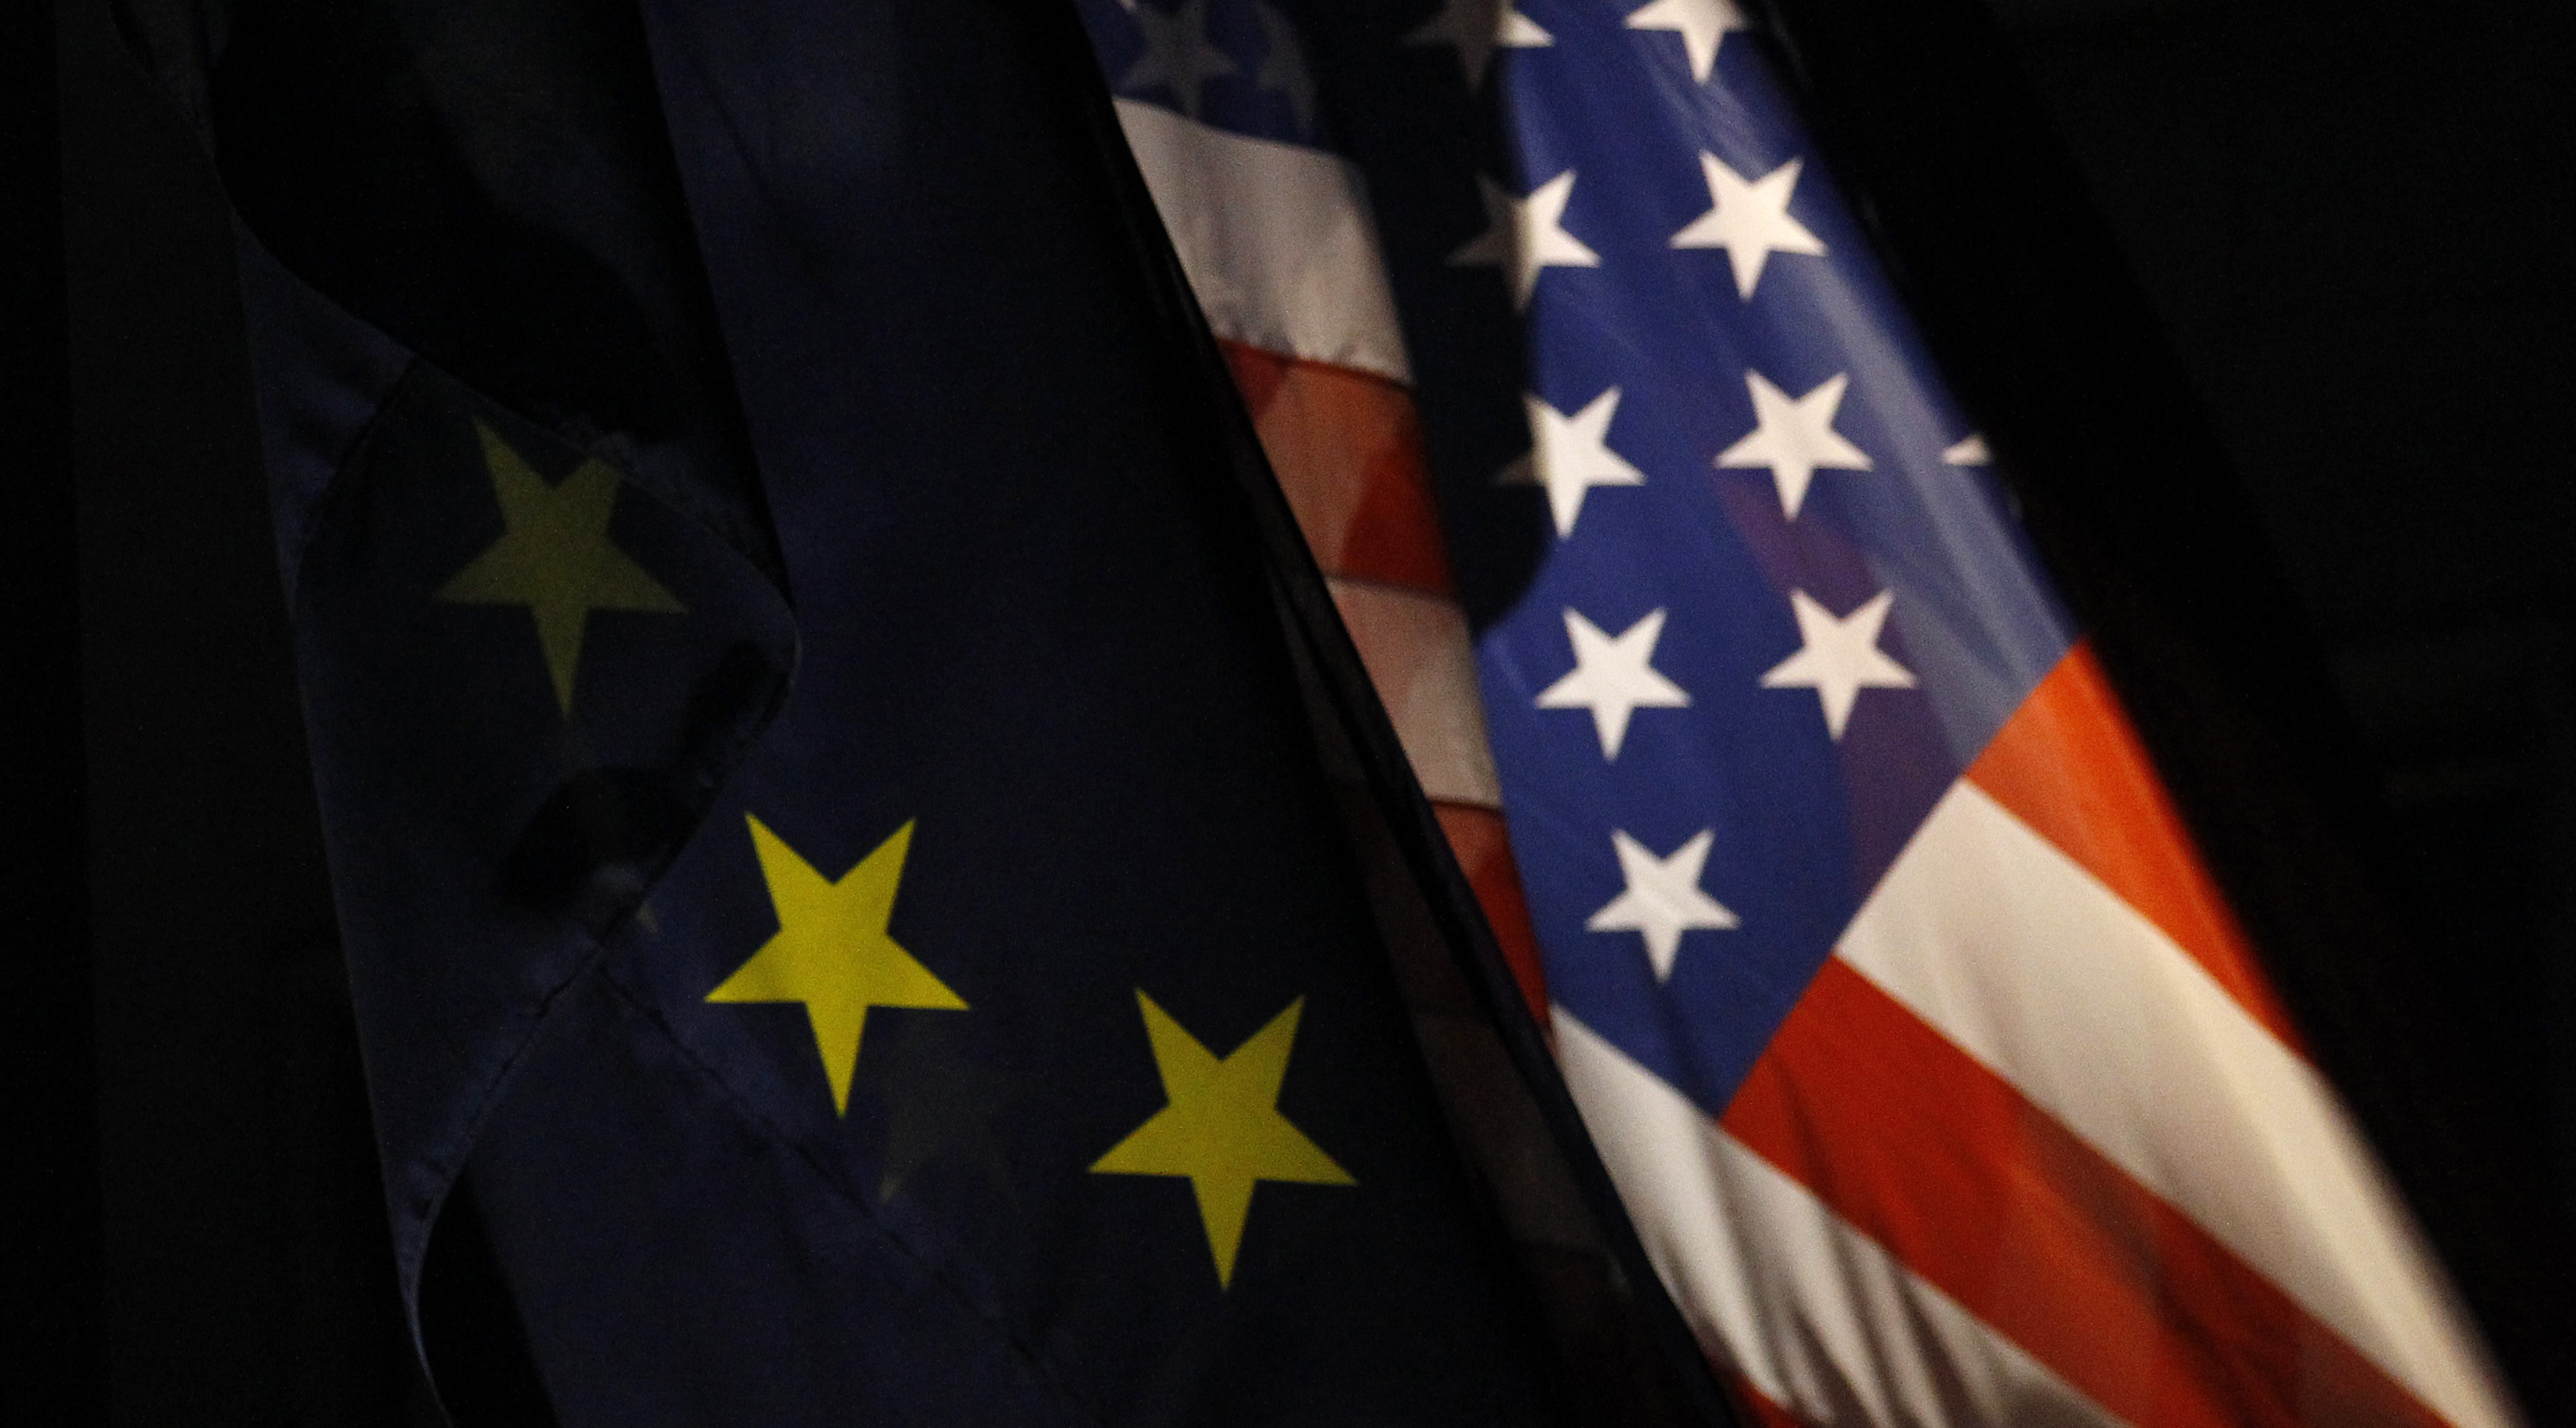 An EU flag and an U.S. flag are pictured in front of the German Finance Ministry before a meeting between German Finance Minister Wolfgang Schaeuble and U.S.Treasury Secretary Timothy Geithner in Berlin December 6, 2011.